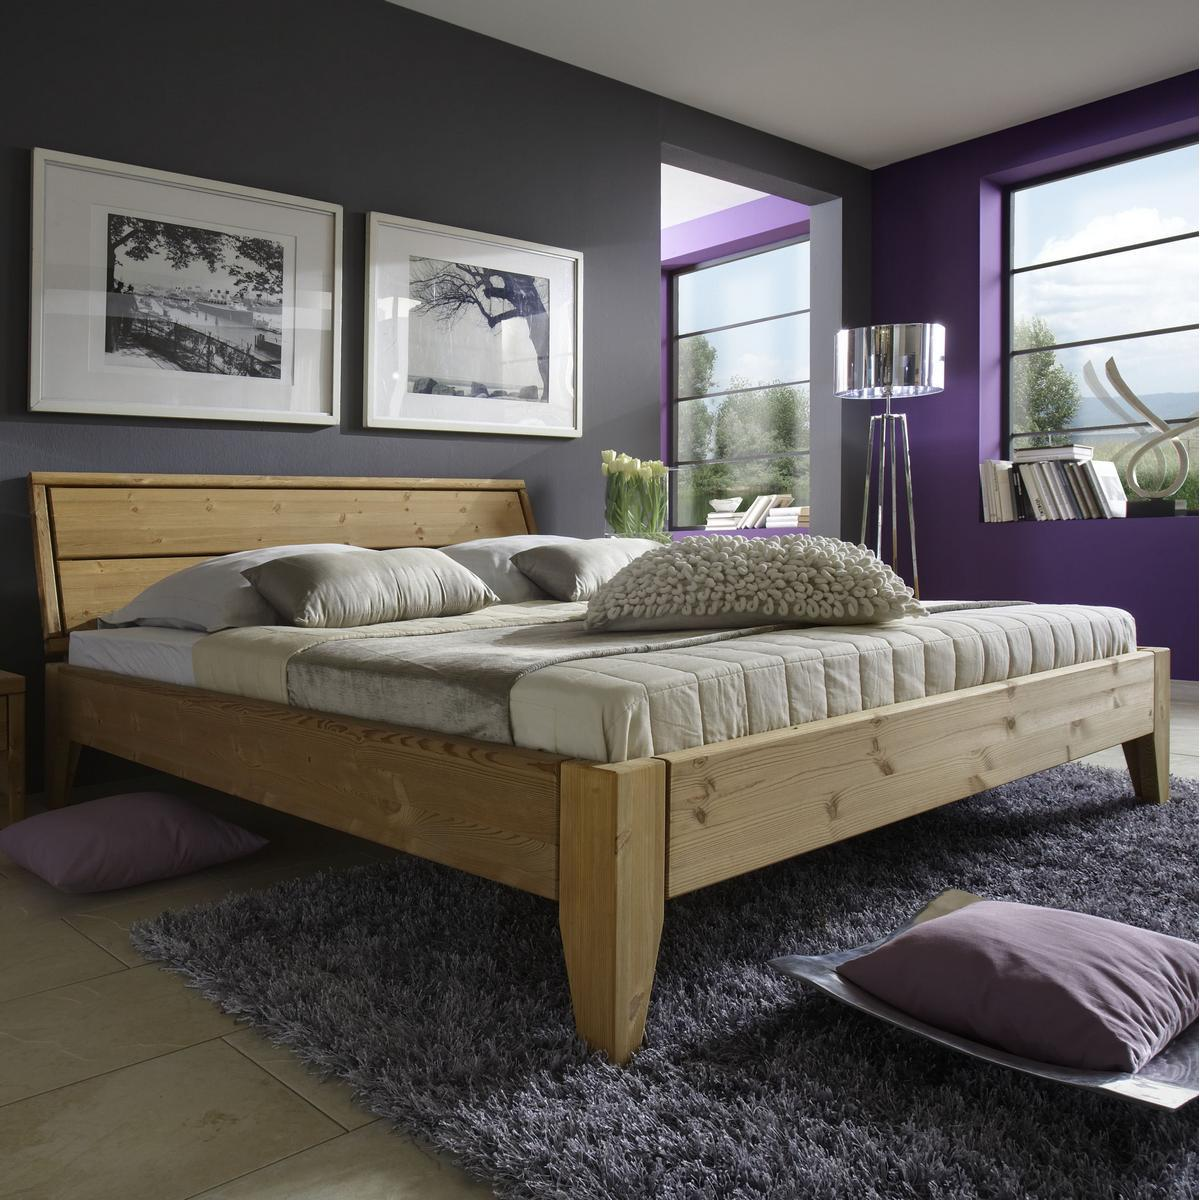 massivholz bett 180x200 easy sleep kiefer massiv gelaugt ge lt 9418 92 5. Black Bedroom Furniture Sets. Home Design Ideas